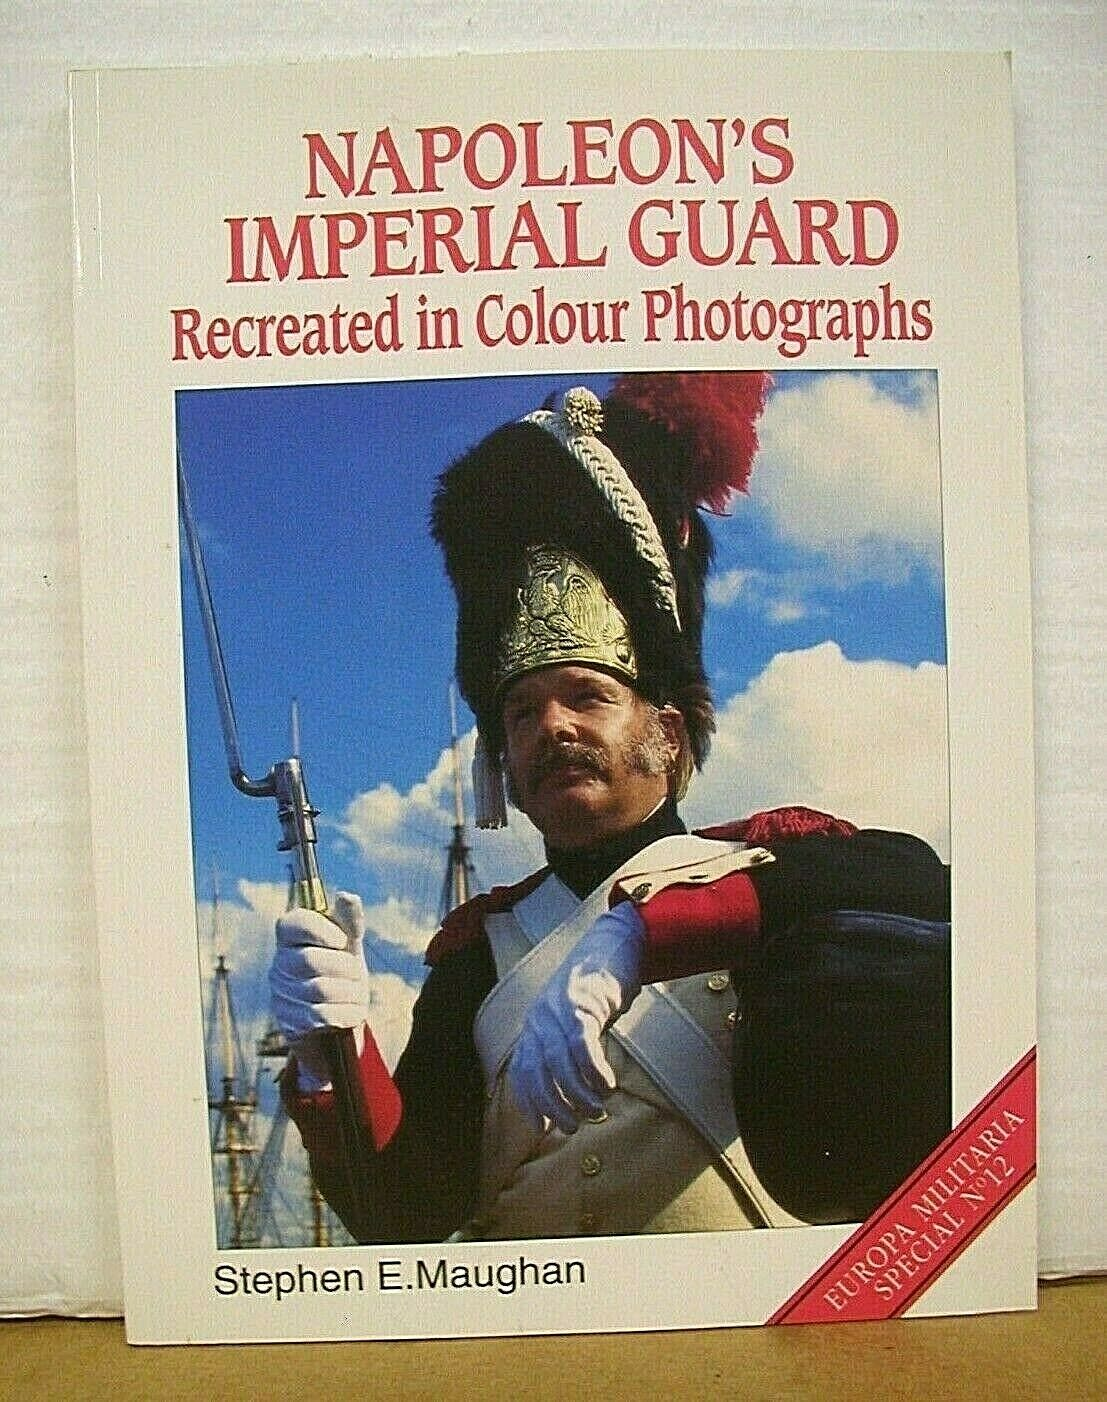 Napoleon s Imperial Guard Recreated In Colour Photographs By Stephen E. Maughan - $19.00